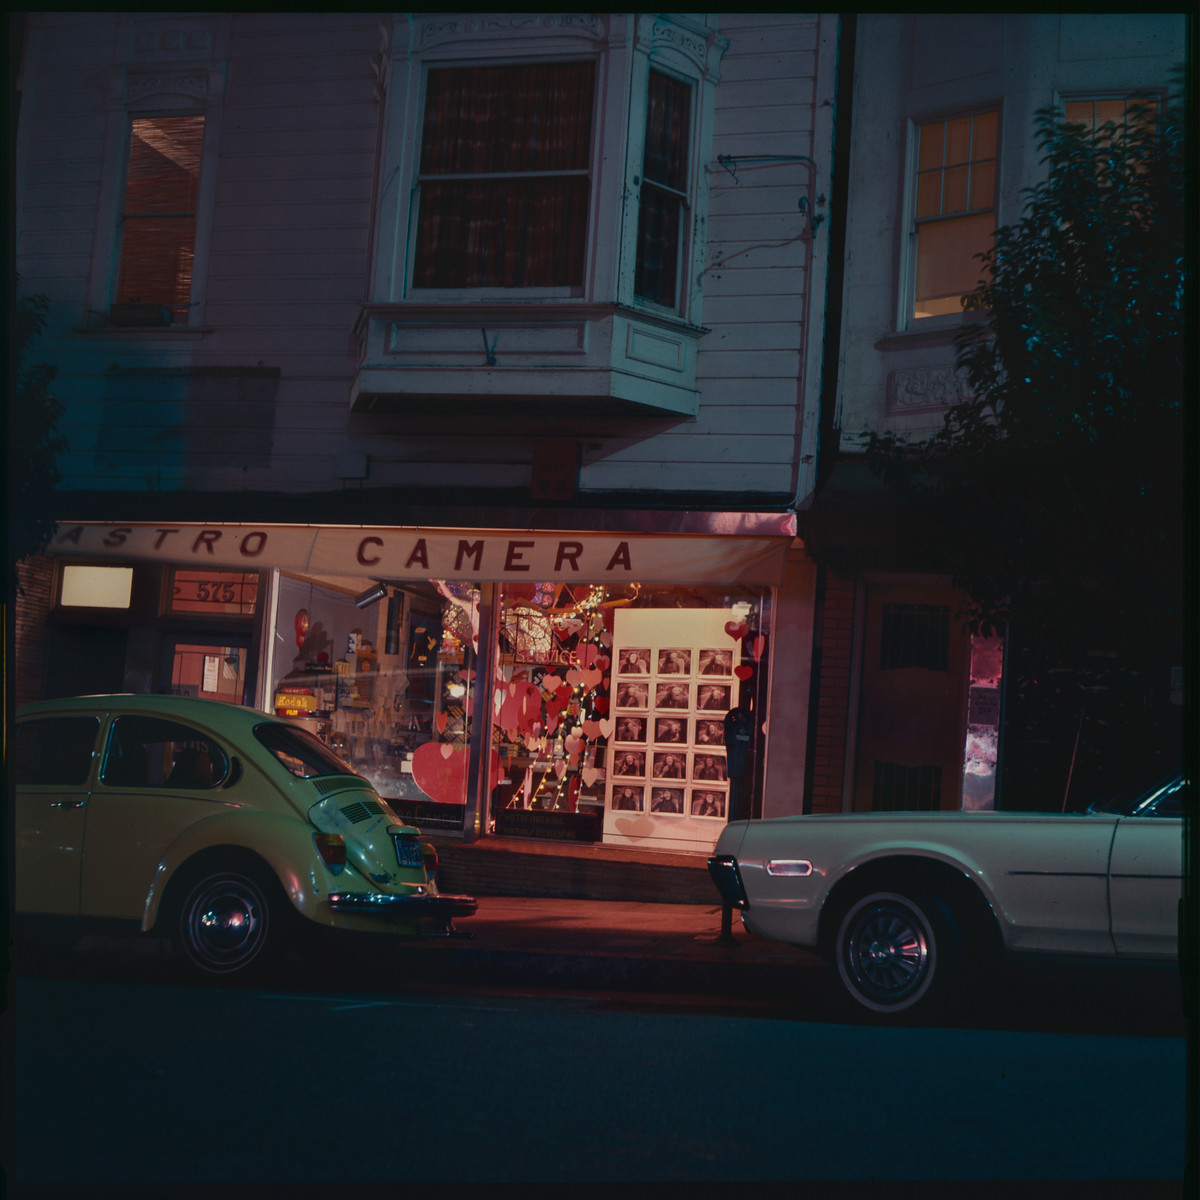 1975, Valentines window - Harvey Milk's Castro Street Camera Store, San Francisco